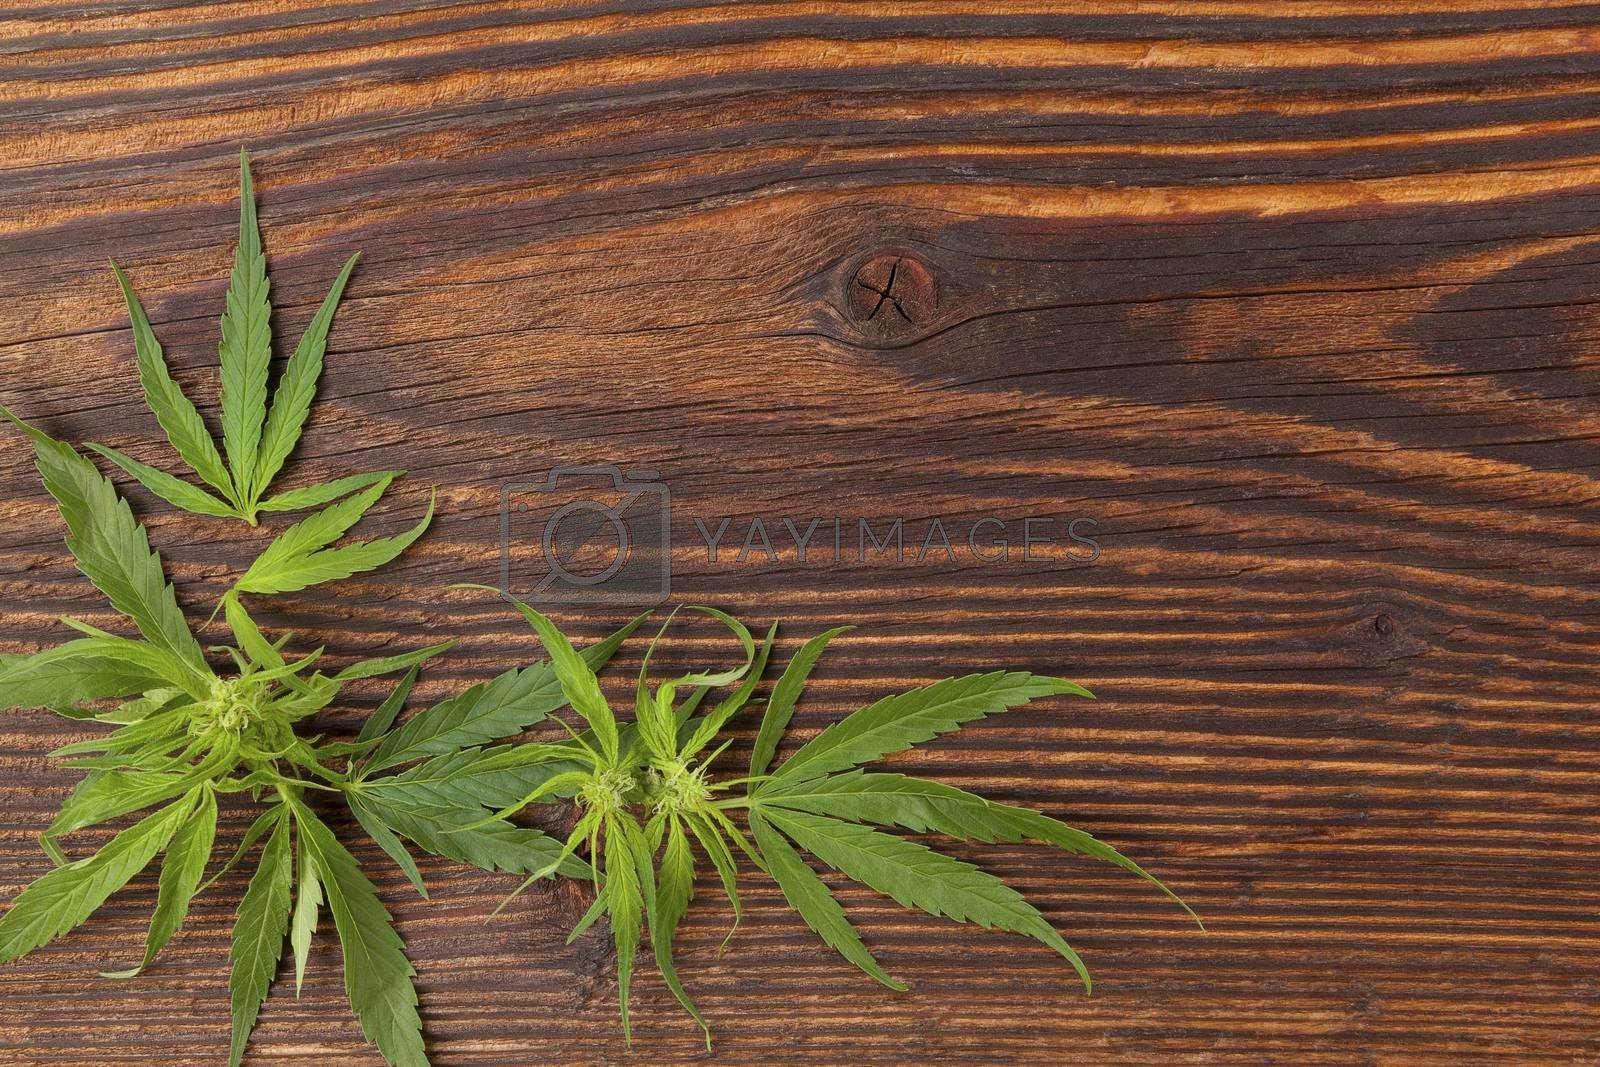 Cannabis buds and foliage on brown wooden table, top view. Medical marijuana, alternative medicine.